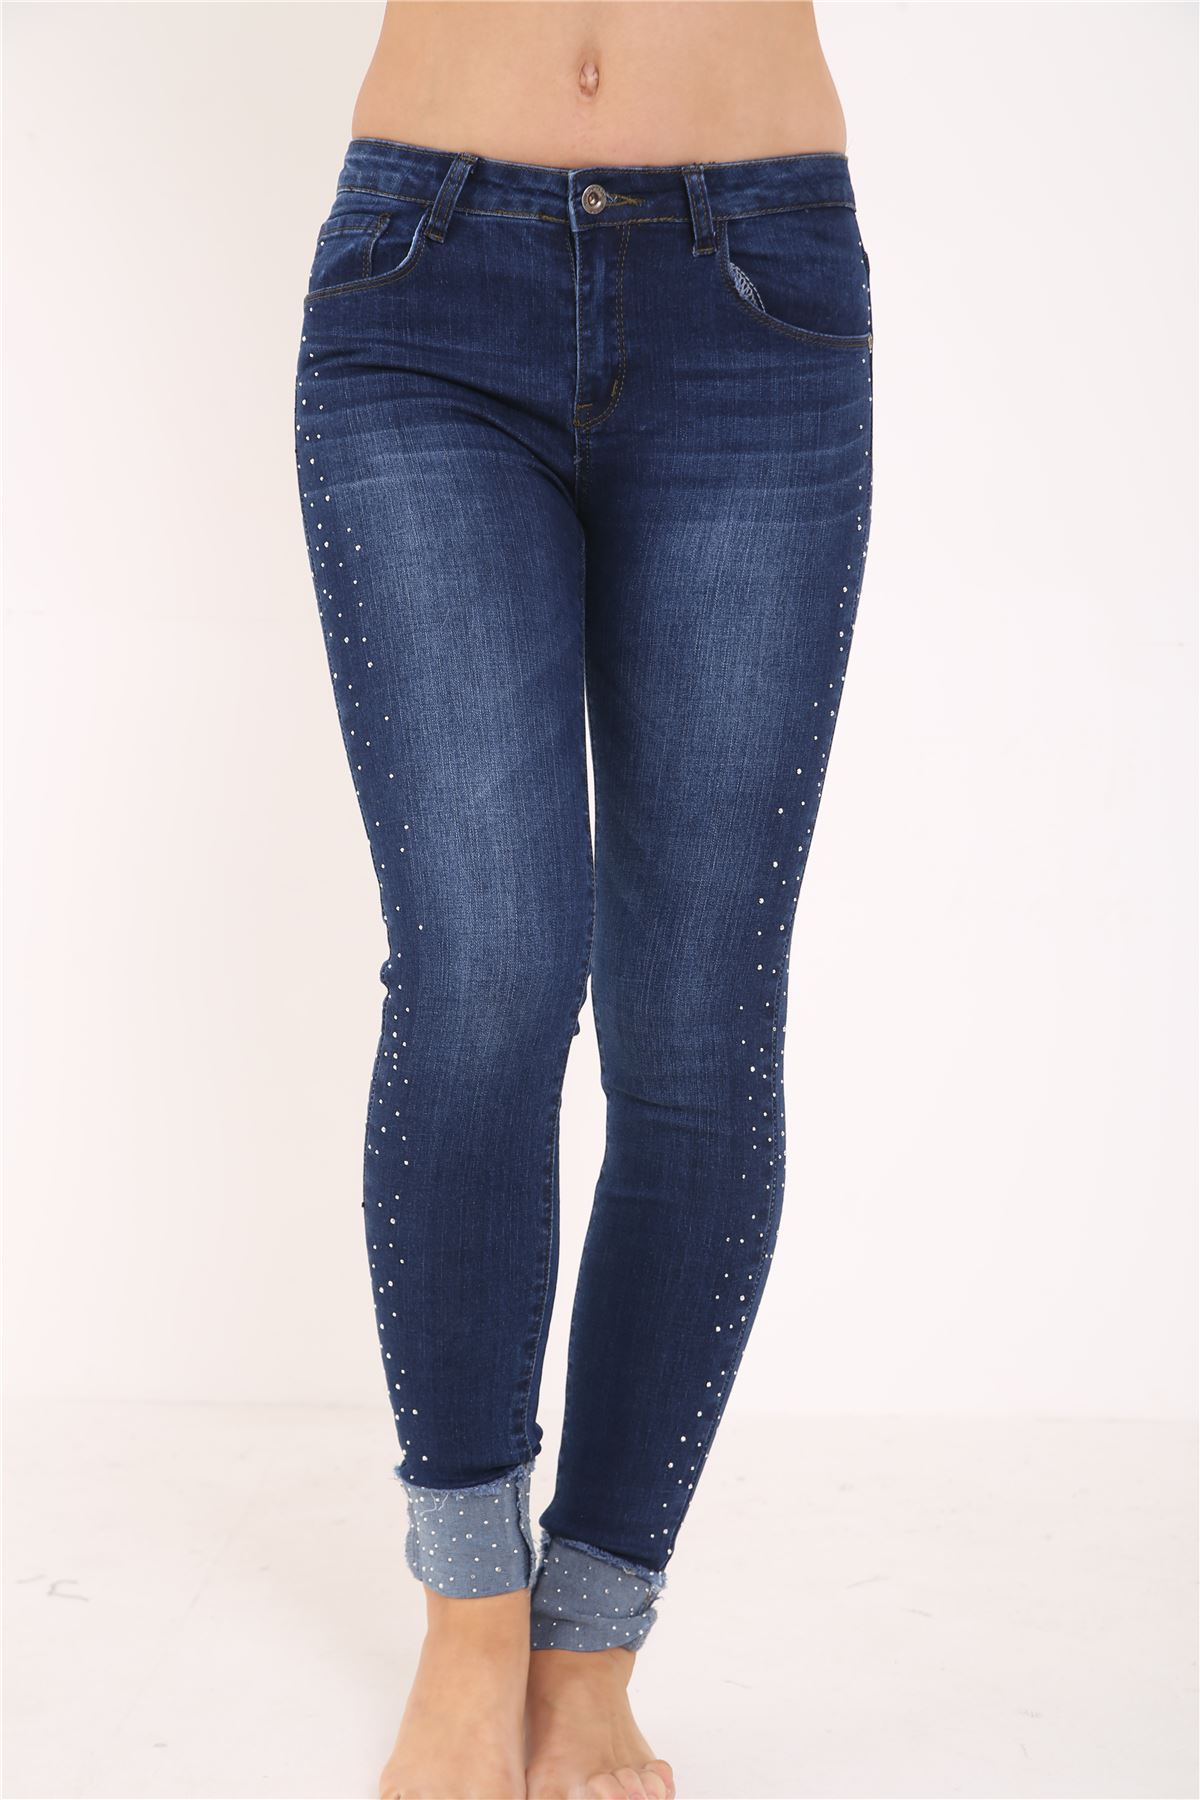 Stretch jeans are the perfect way to get ultra slim, fitted skinny styling—even try denim leggings. Or try a slim straight leg designs or go fro a vintage-inspired wide-leg pick. Shop stretchy jeans from brands like MICHAEL Michael Kors, Lauren Ralph Lauren, Eileen Fisher and Charter Club (only at Macy's).